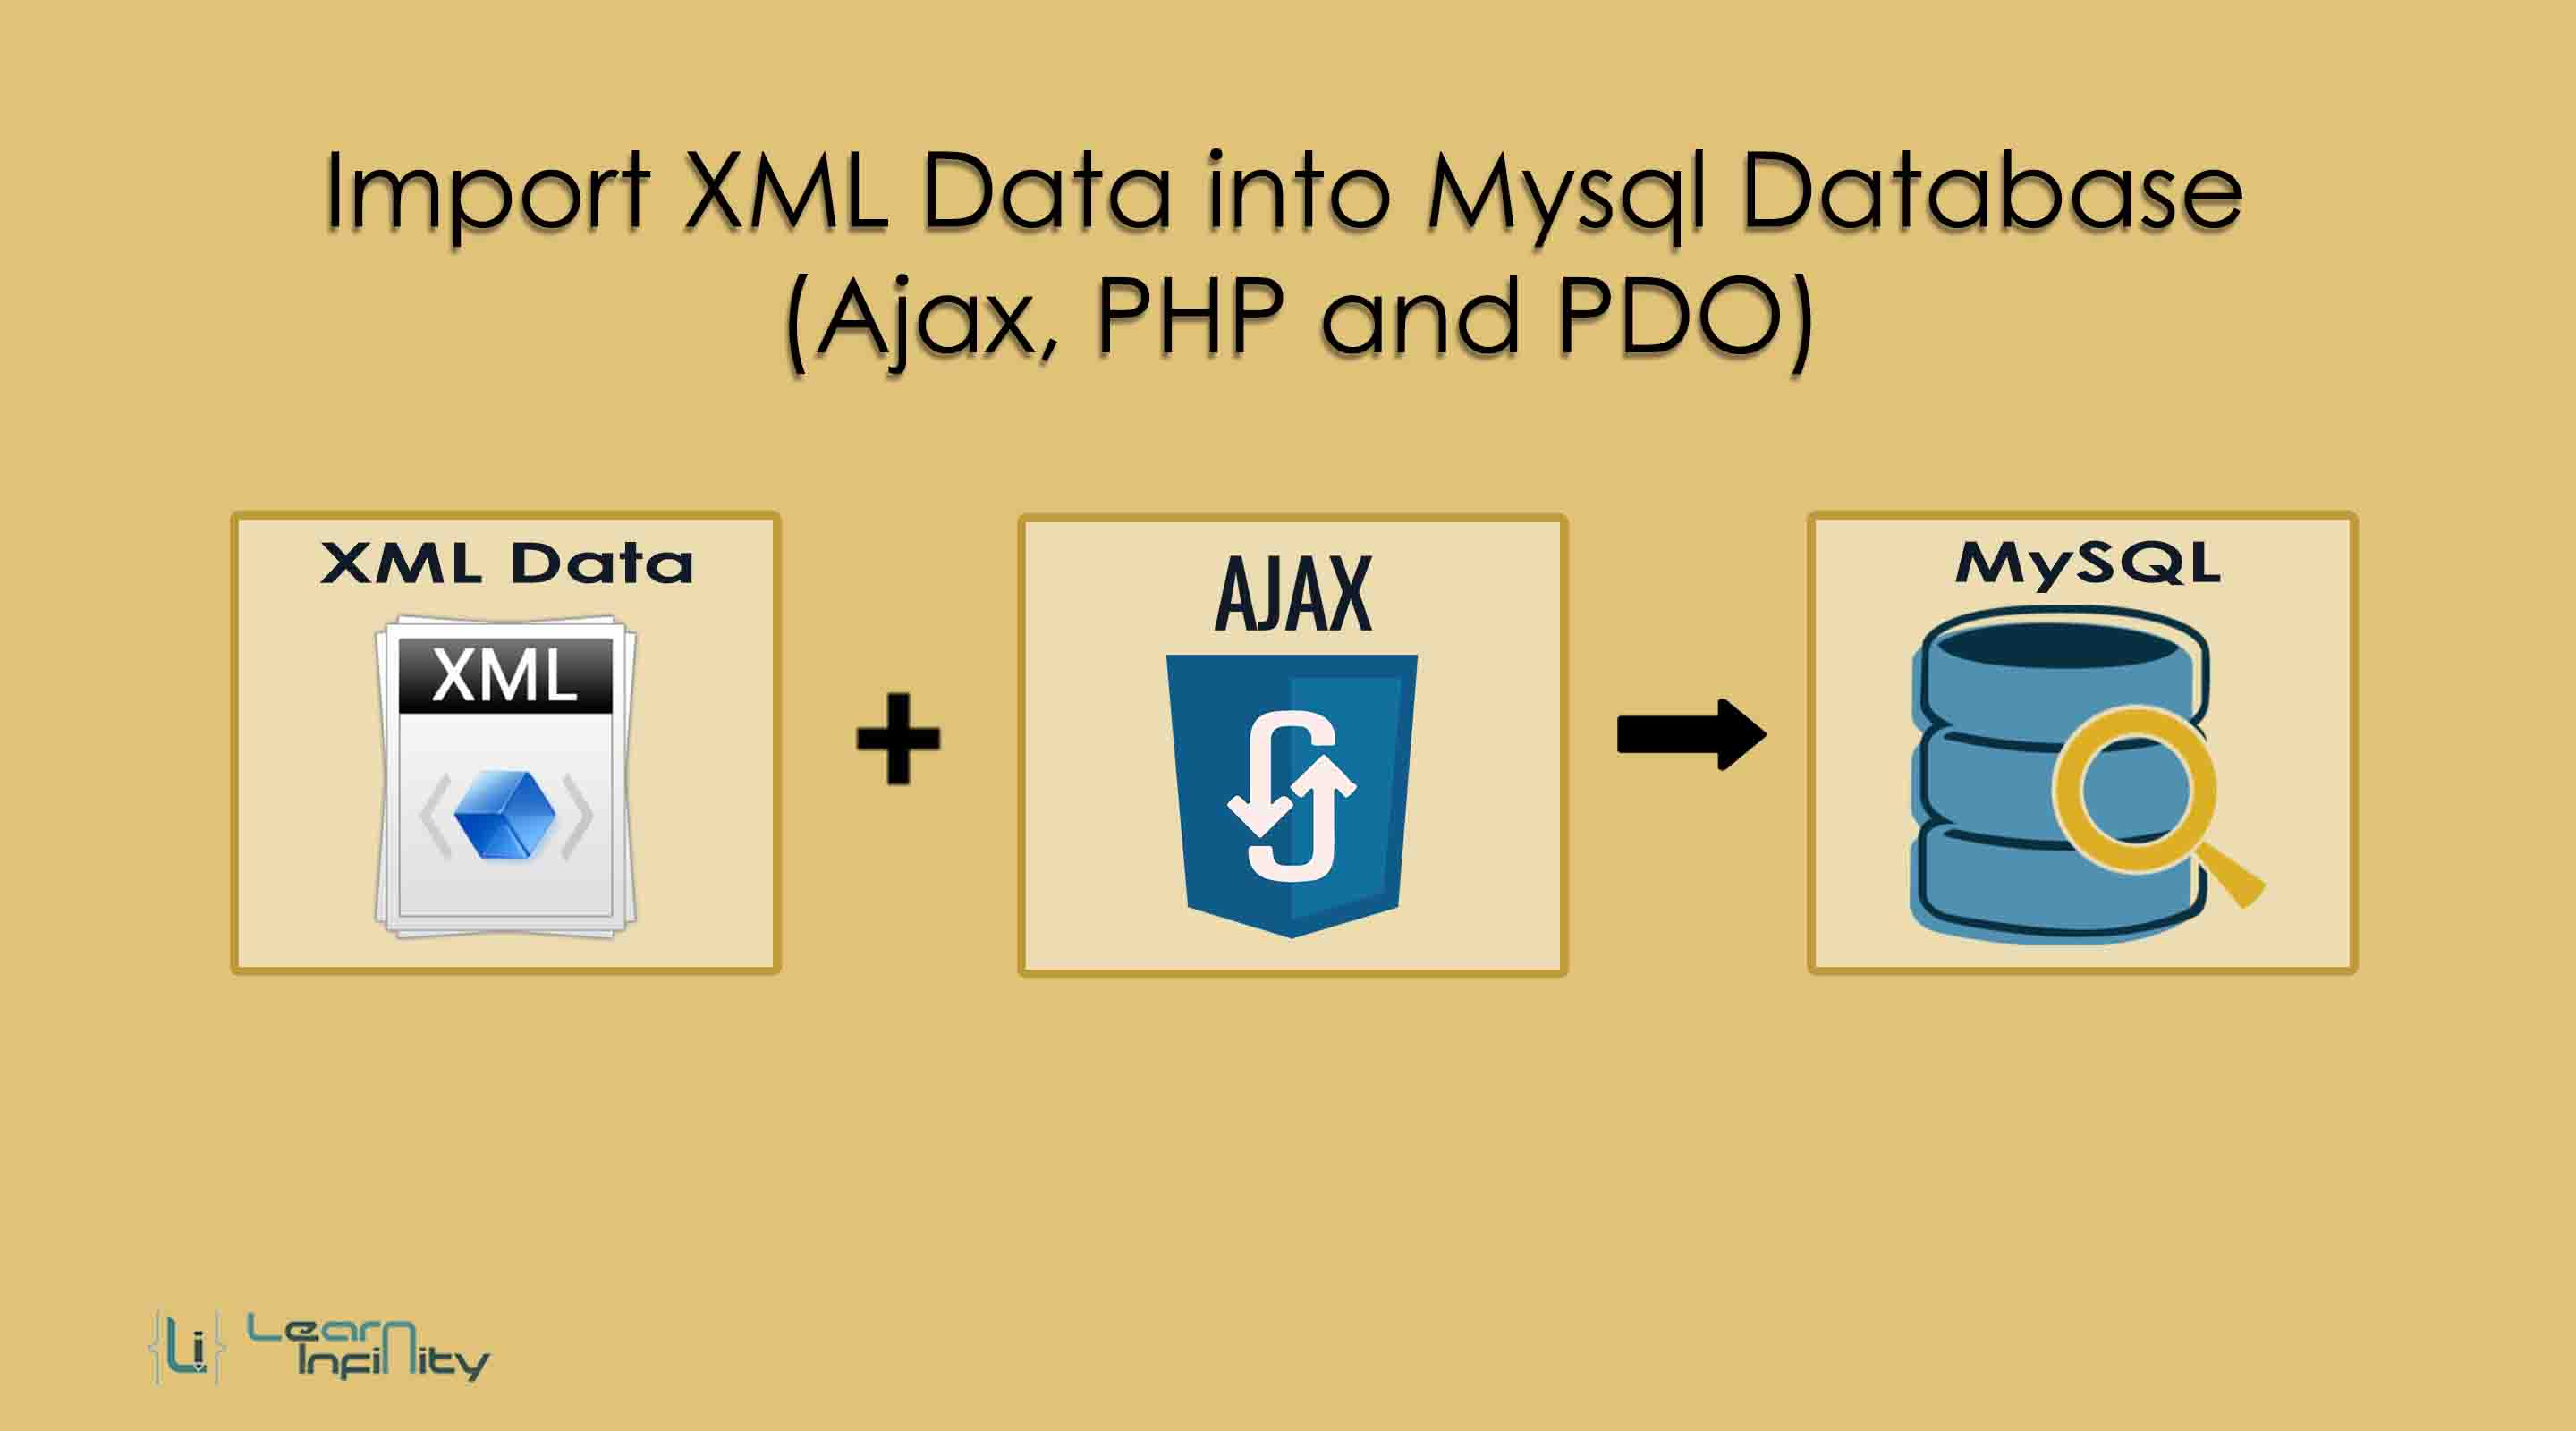 Import XML Data into Mysql Database (Ajax, PHP and PDO)